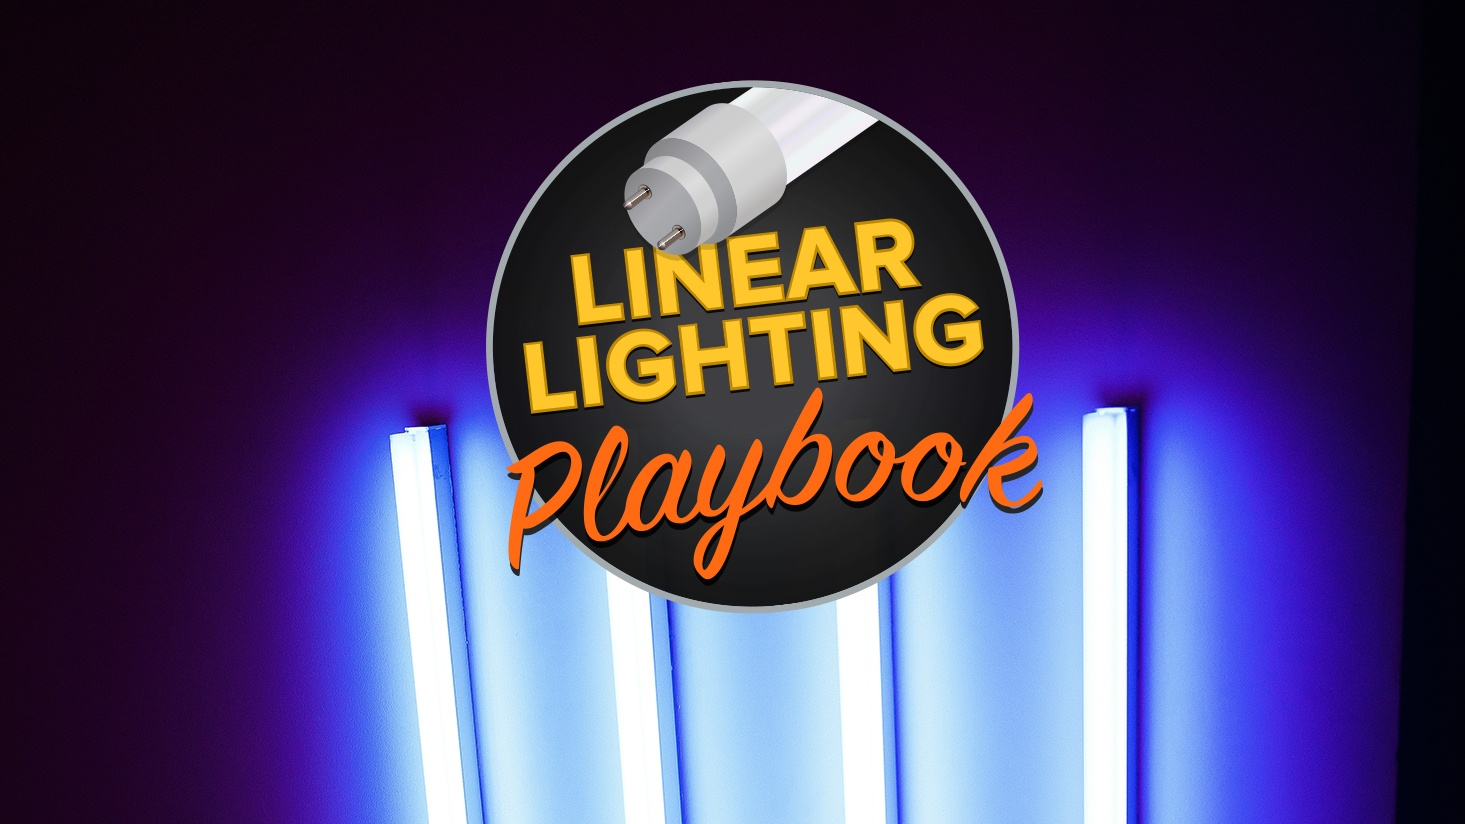 Deciding between fluorescent and LED tubes? Check out our Linear Lighting Playbook for insider advice